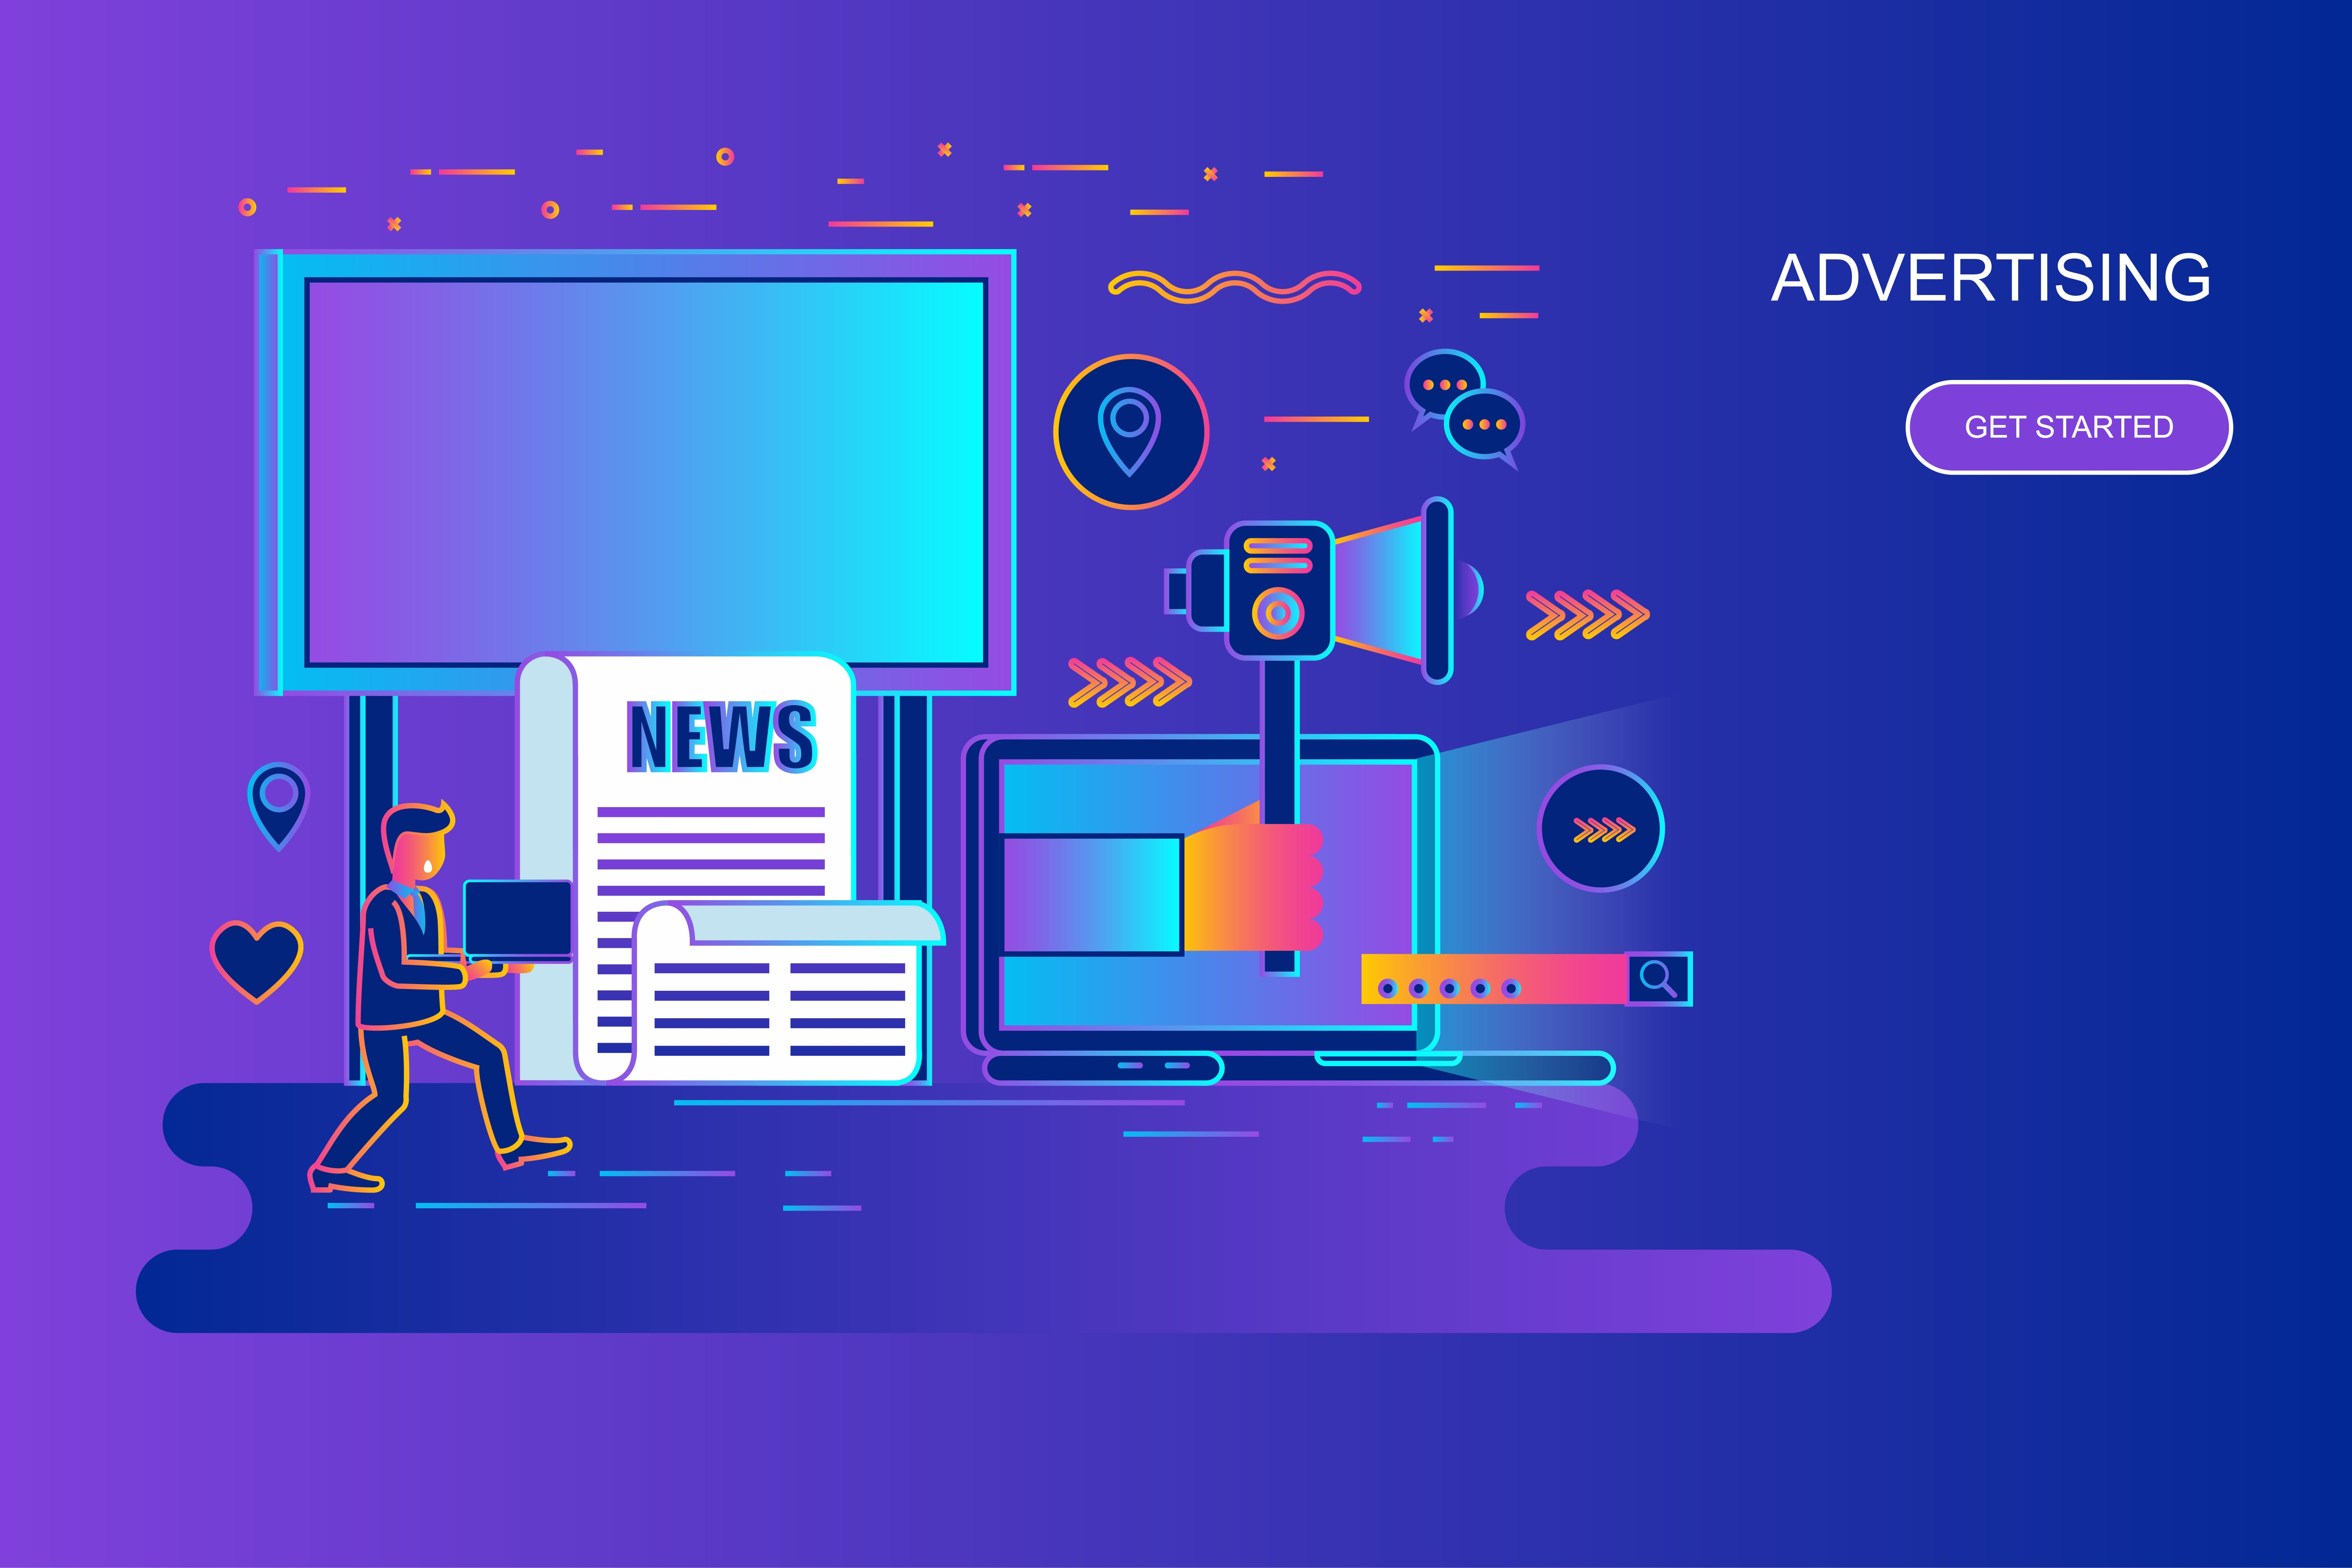 Modern gradient flat line concept web banner of advertising and promo with decorated small people character. Landing page template. Conceptual vector illustration for web, graphic design, marketing.